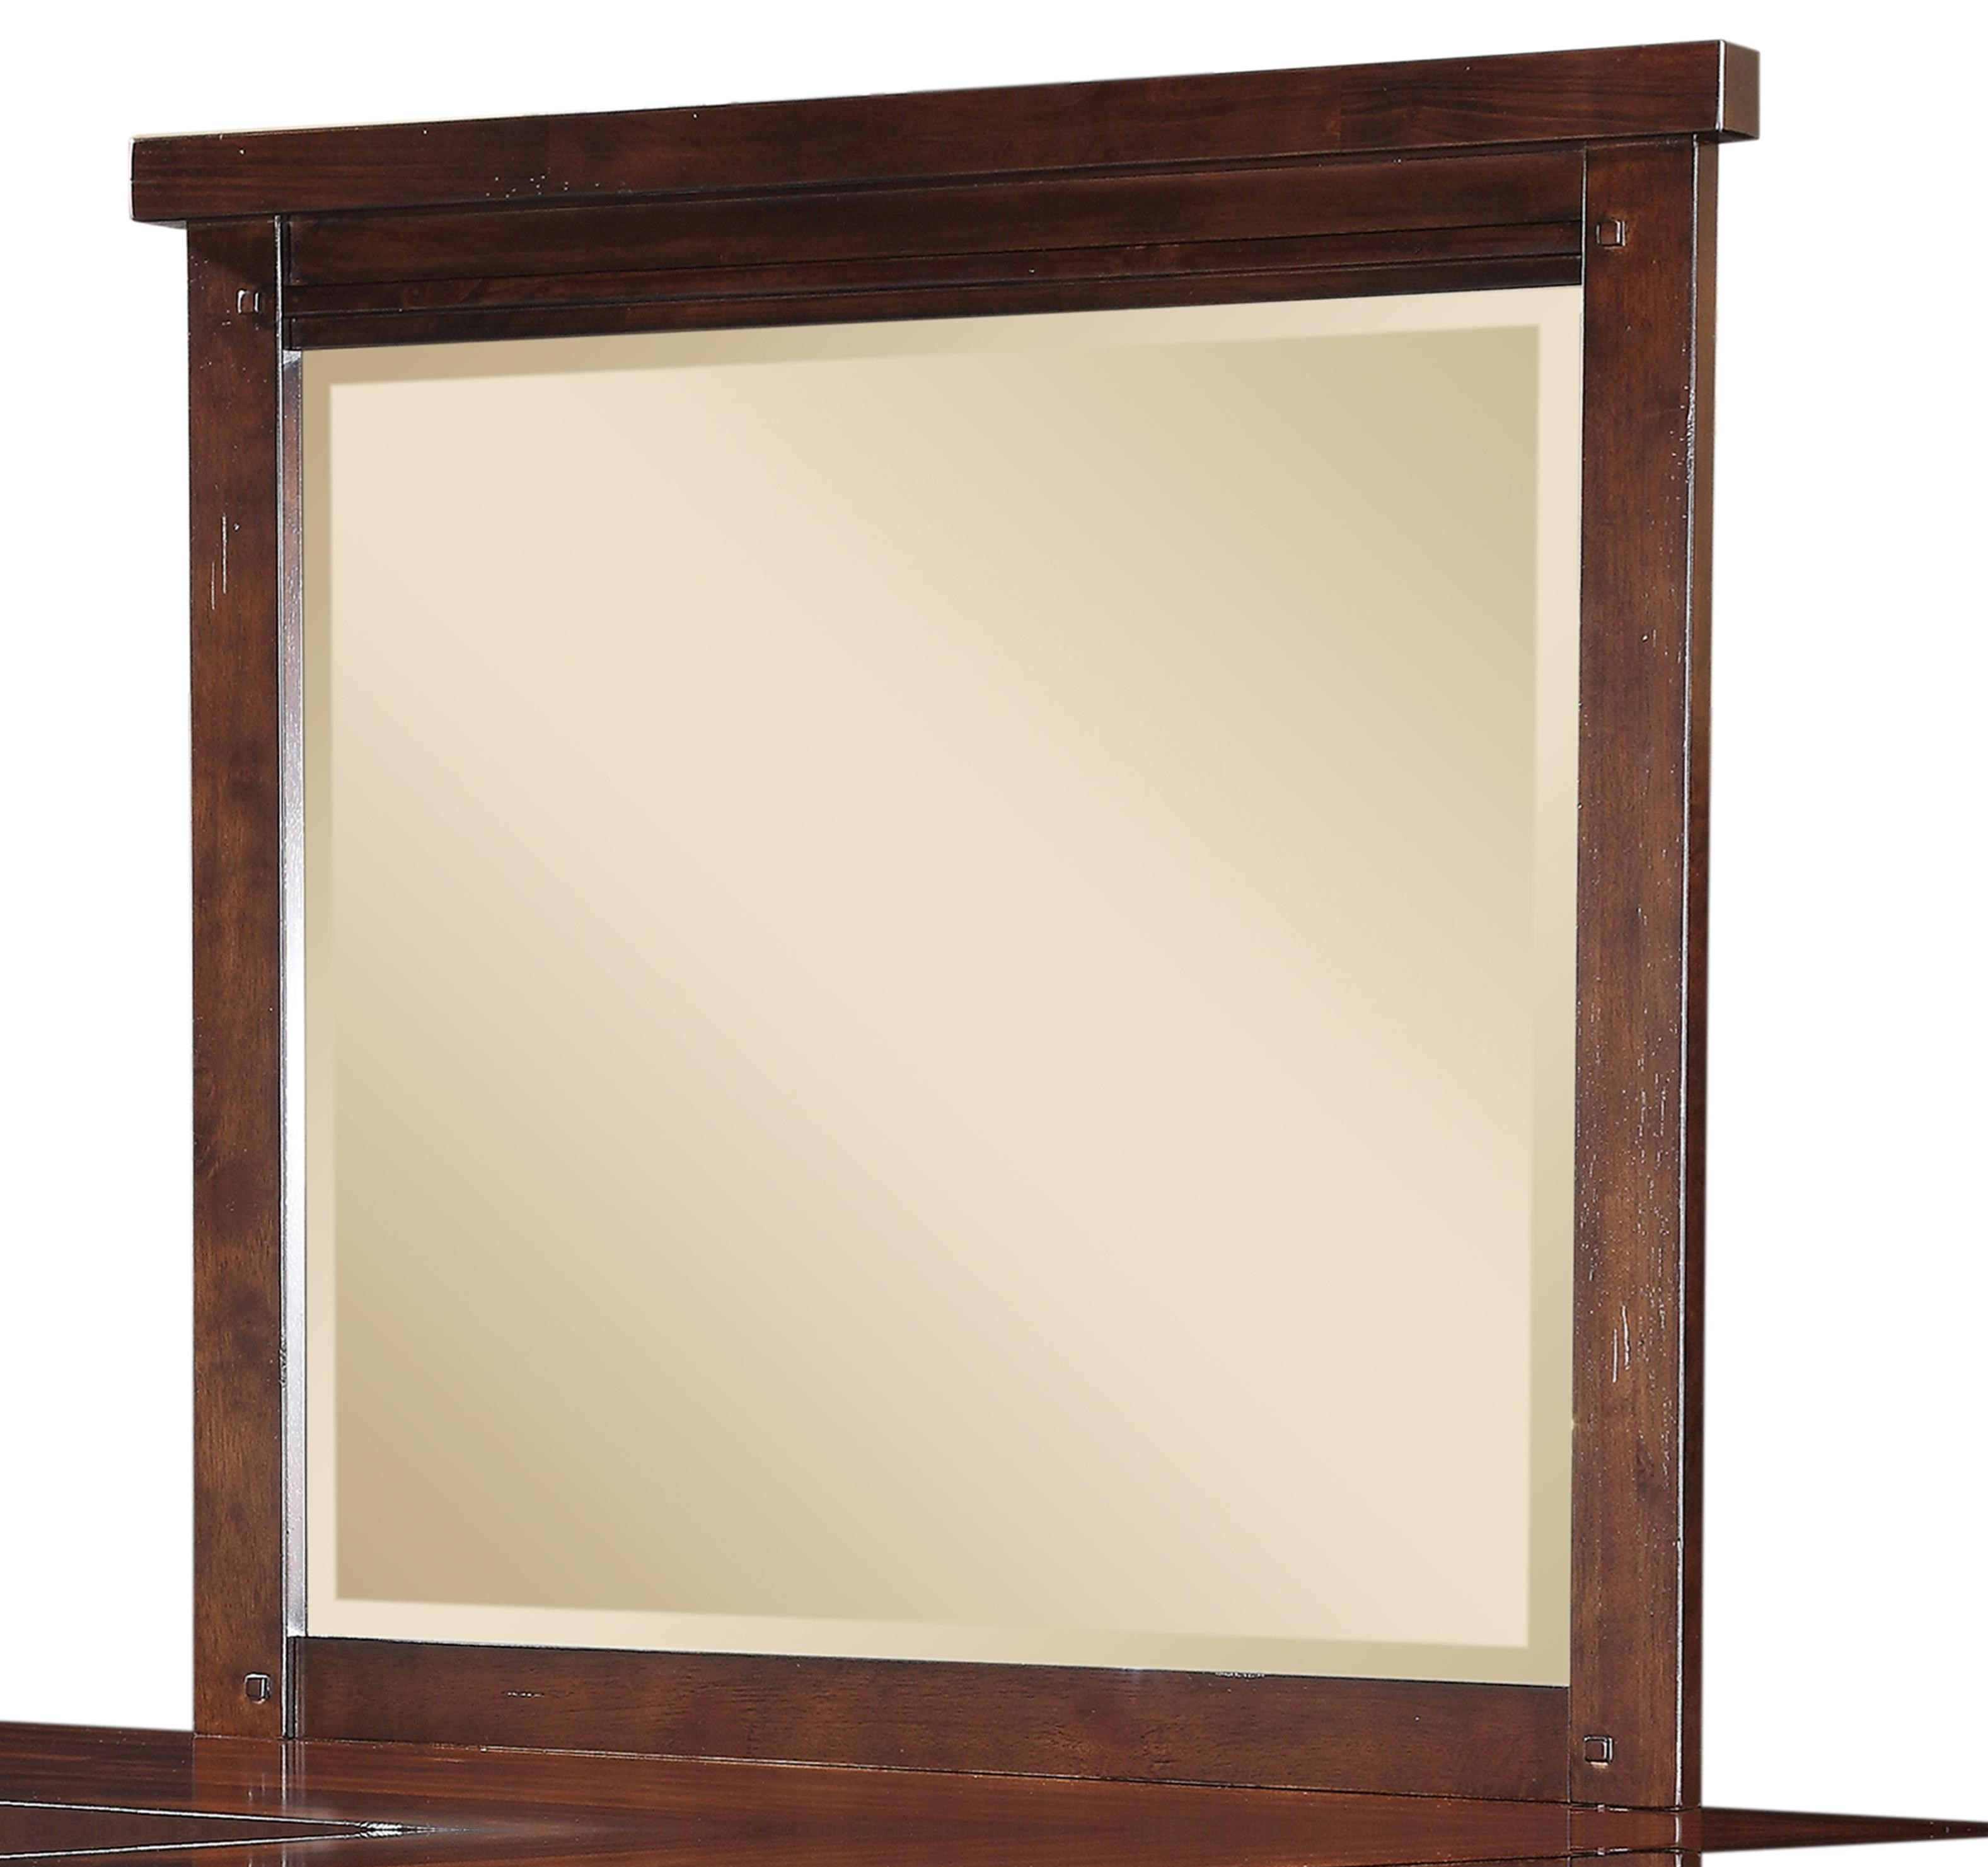 HAYWARD MANGO WOOD MIRROR at Walker's Furniture